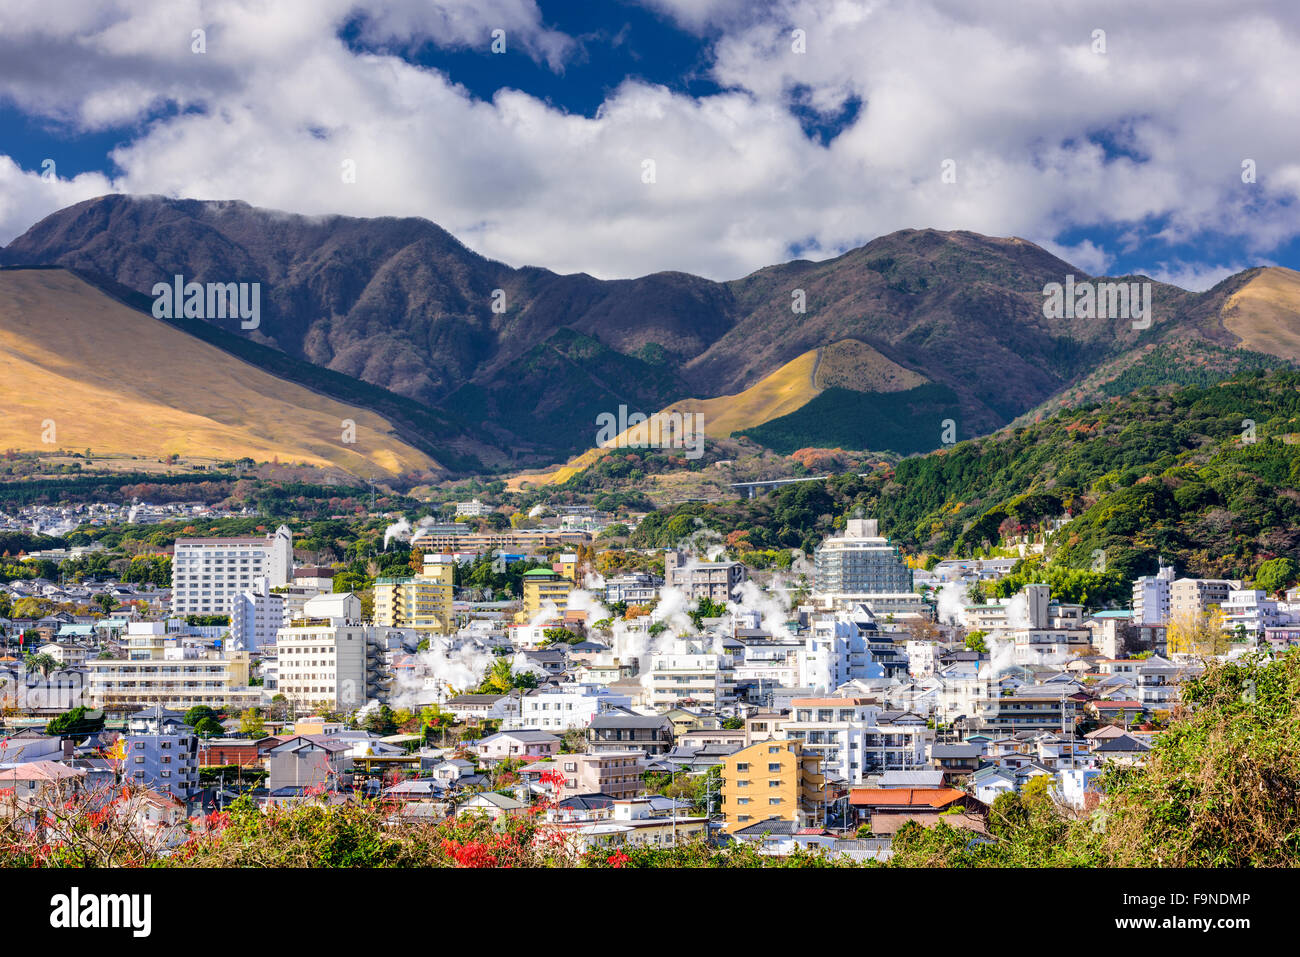 Beppu, Japan cityscape with hot spring bath houses. - Stock Image